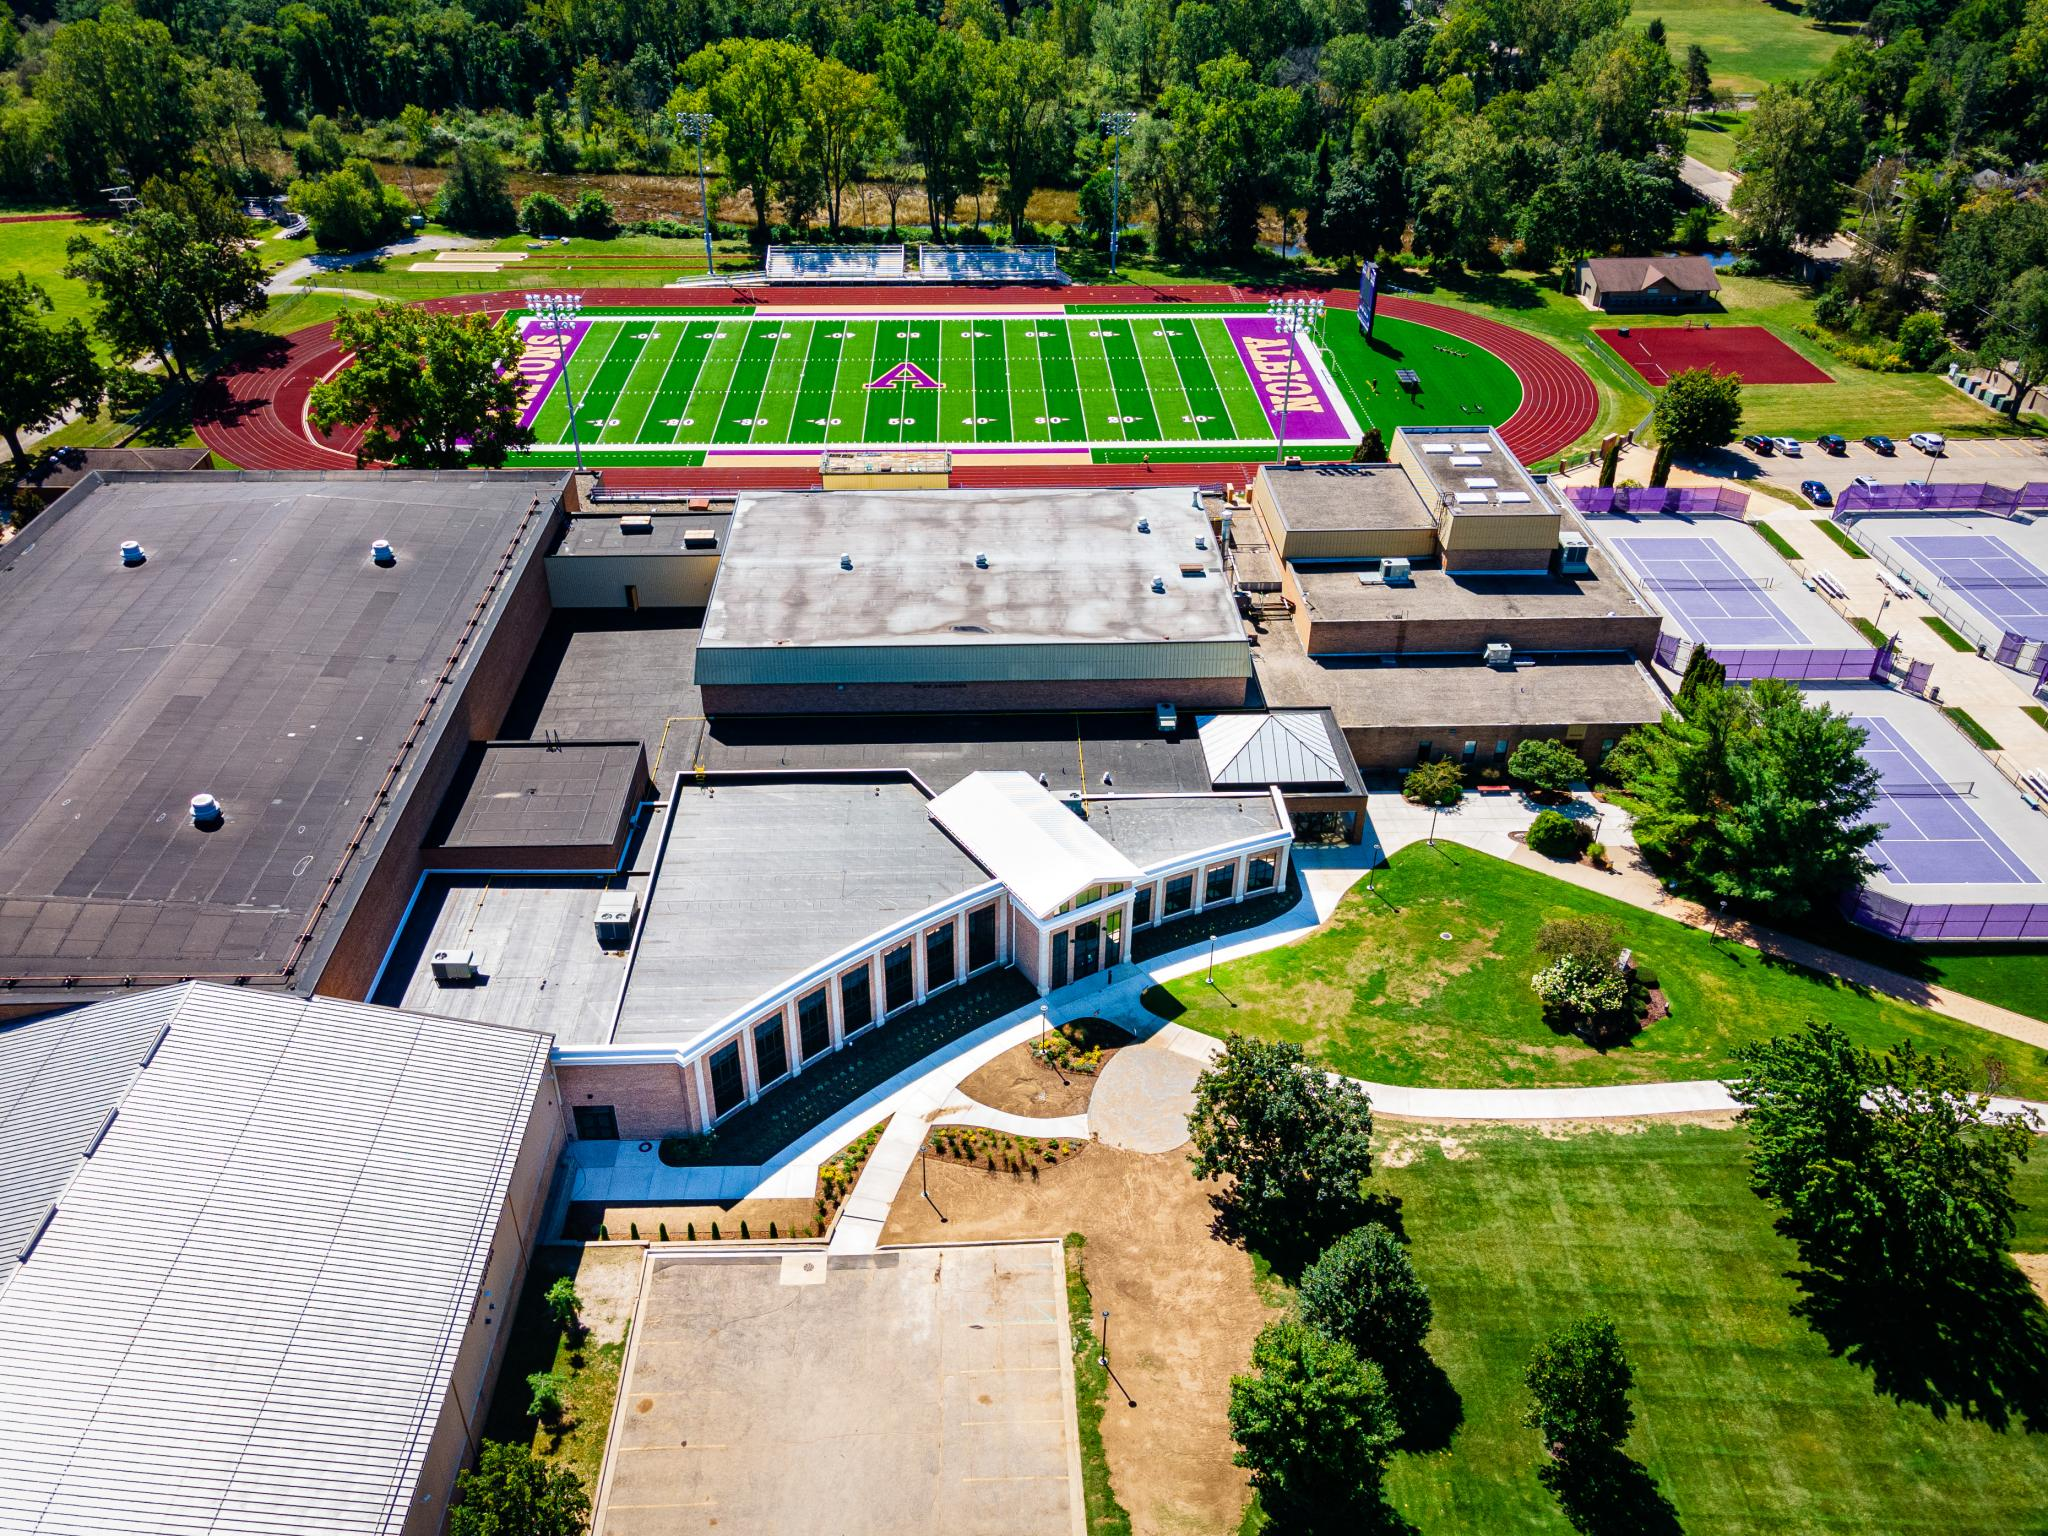 aerial image of building with athletics field nearby